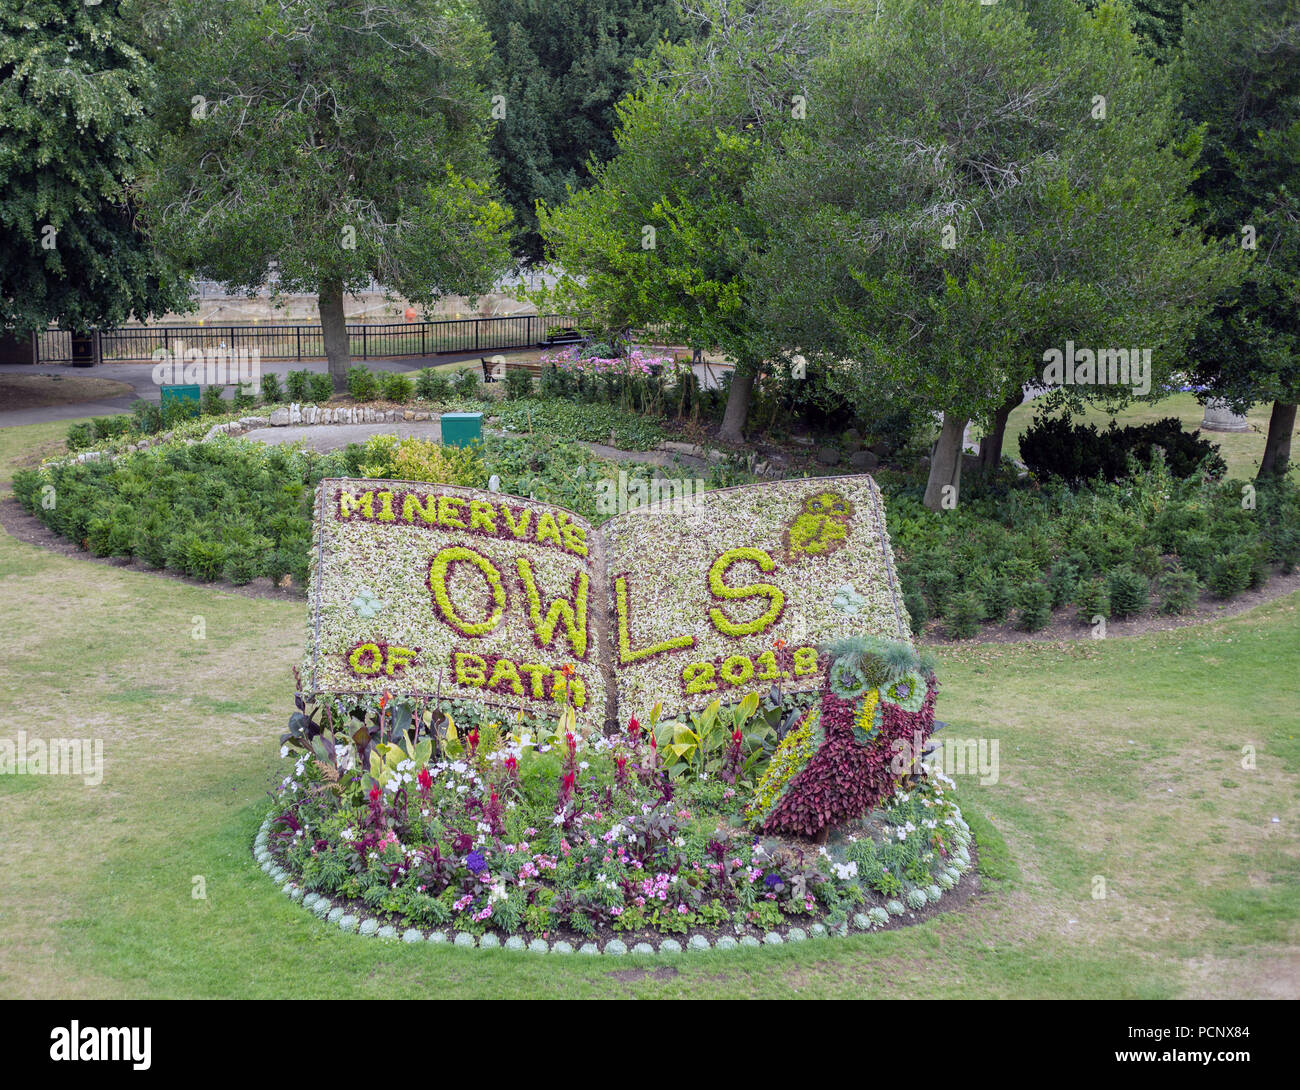 A floral display in Bath's Parade Gardens, forming part of the Minerva's Owls of Bath 2018 sculpture trail. - Stock Image